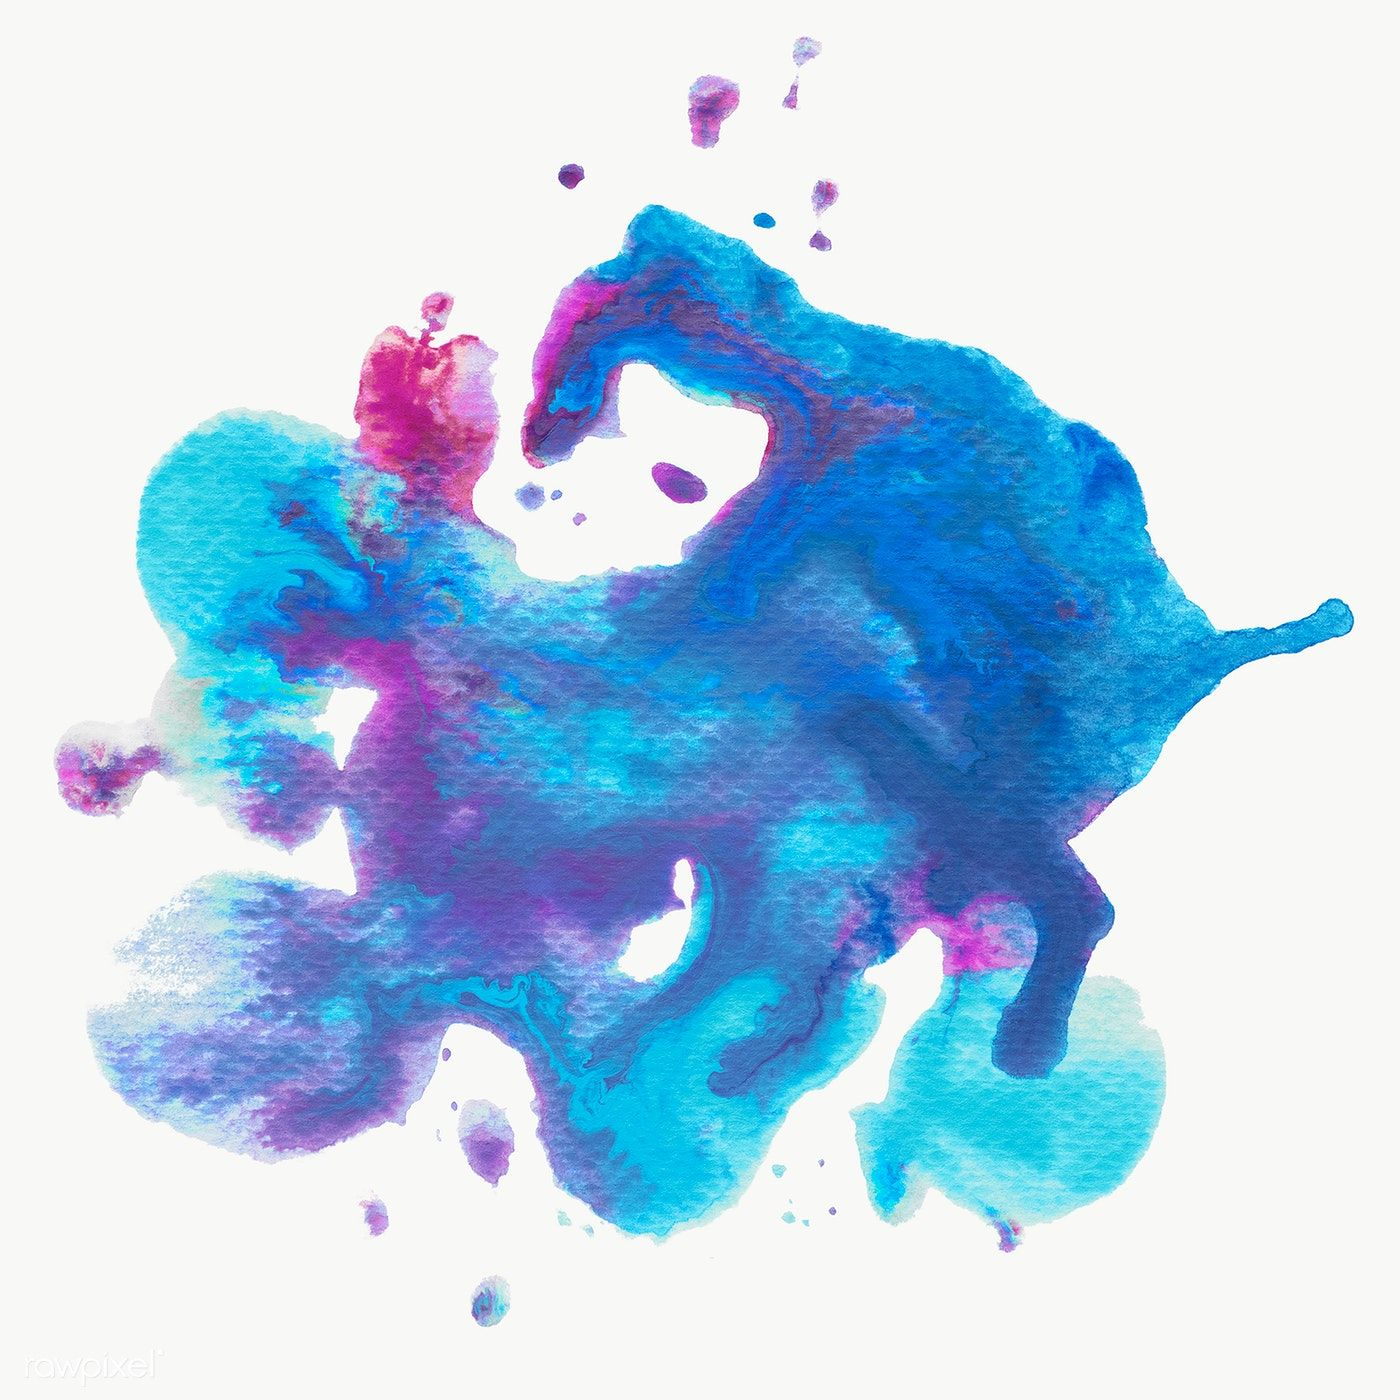 Abstract Blue And Pink Watercolor Splash Transparent Png Free Image By Rawpixel Com Aew